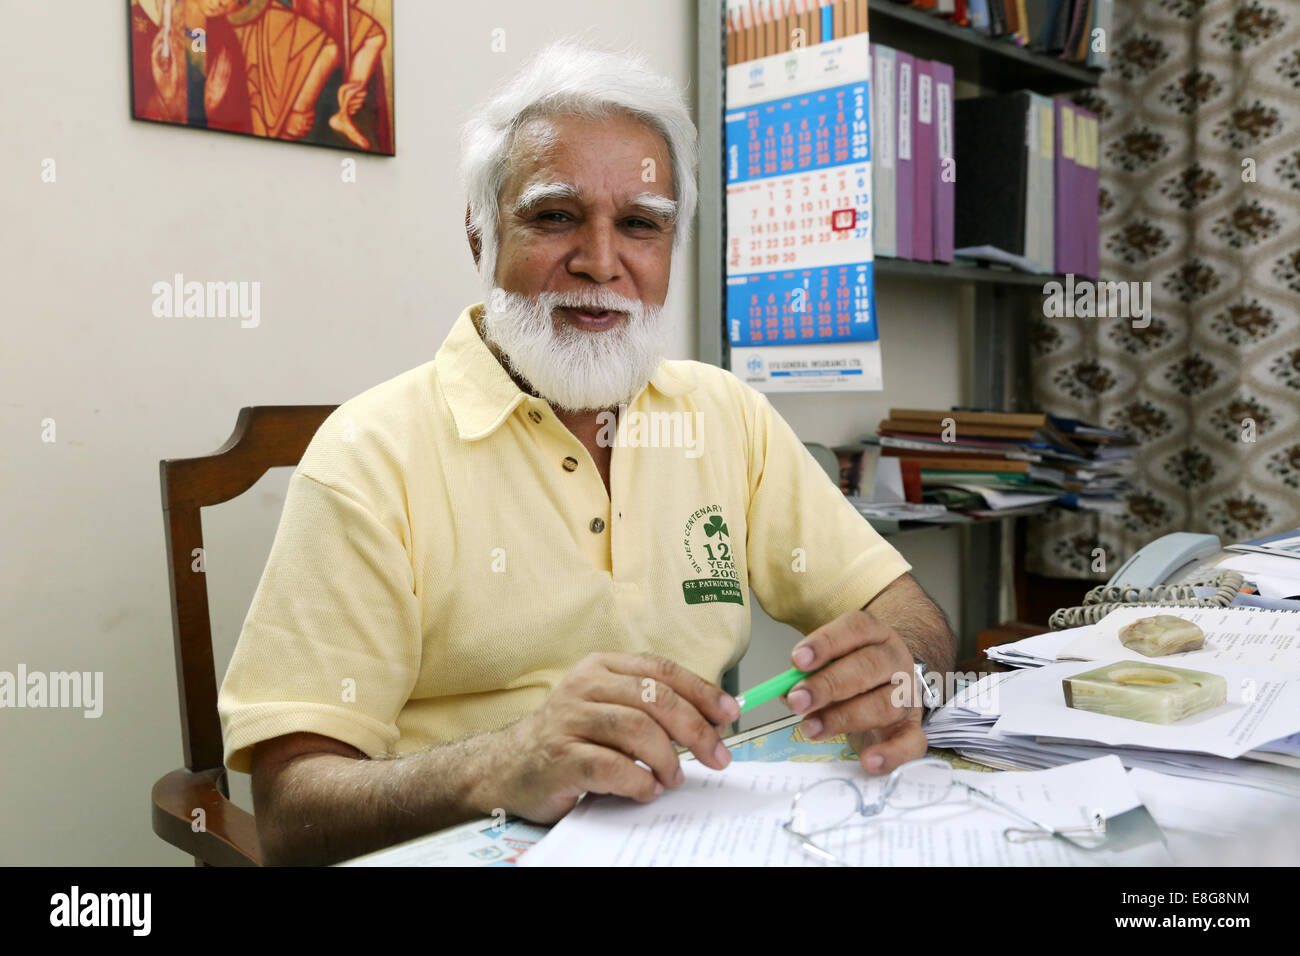 JOSEPH COUTTS, Archbishop of the roman catholic Diocese of Karachi, Pakistan Stock Photo